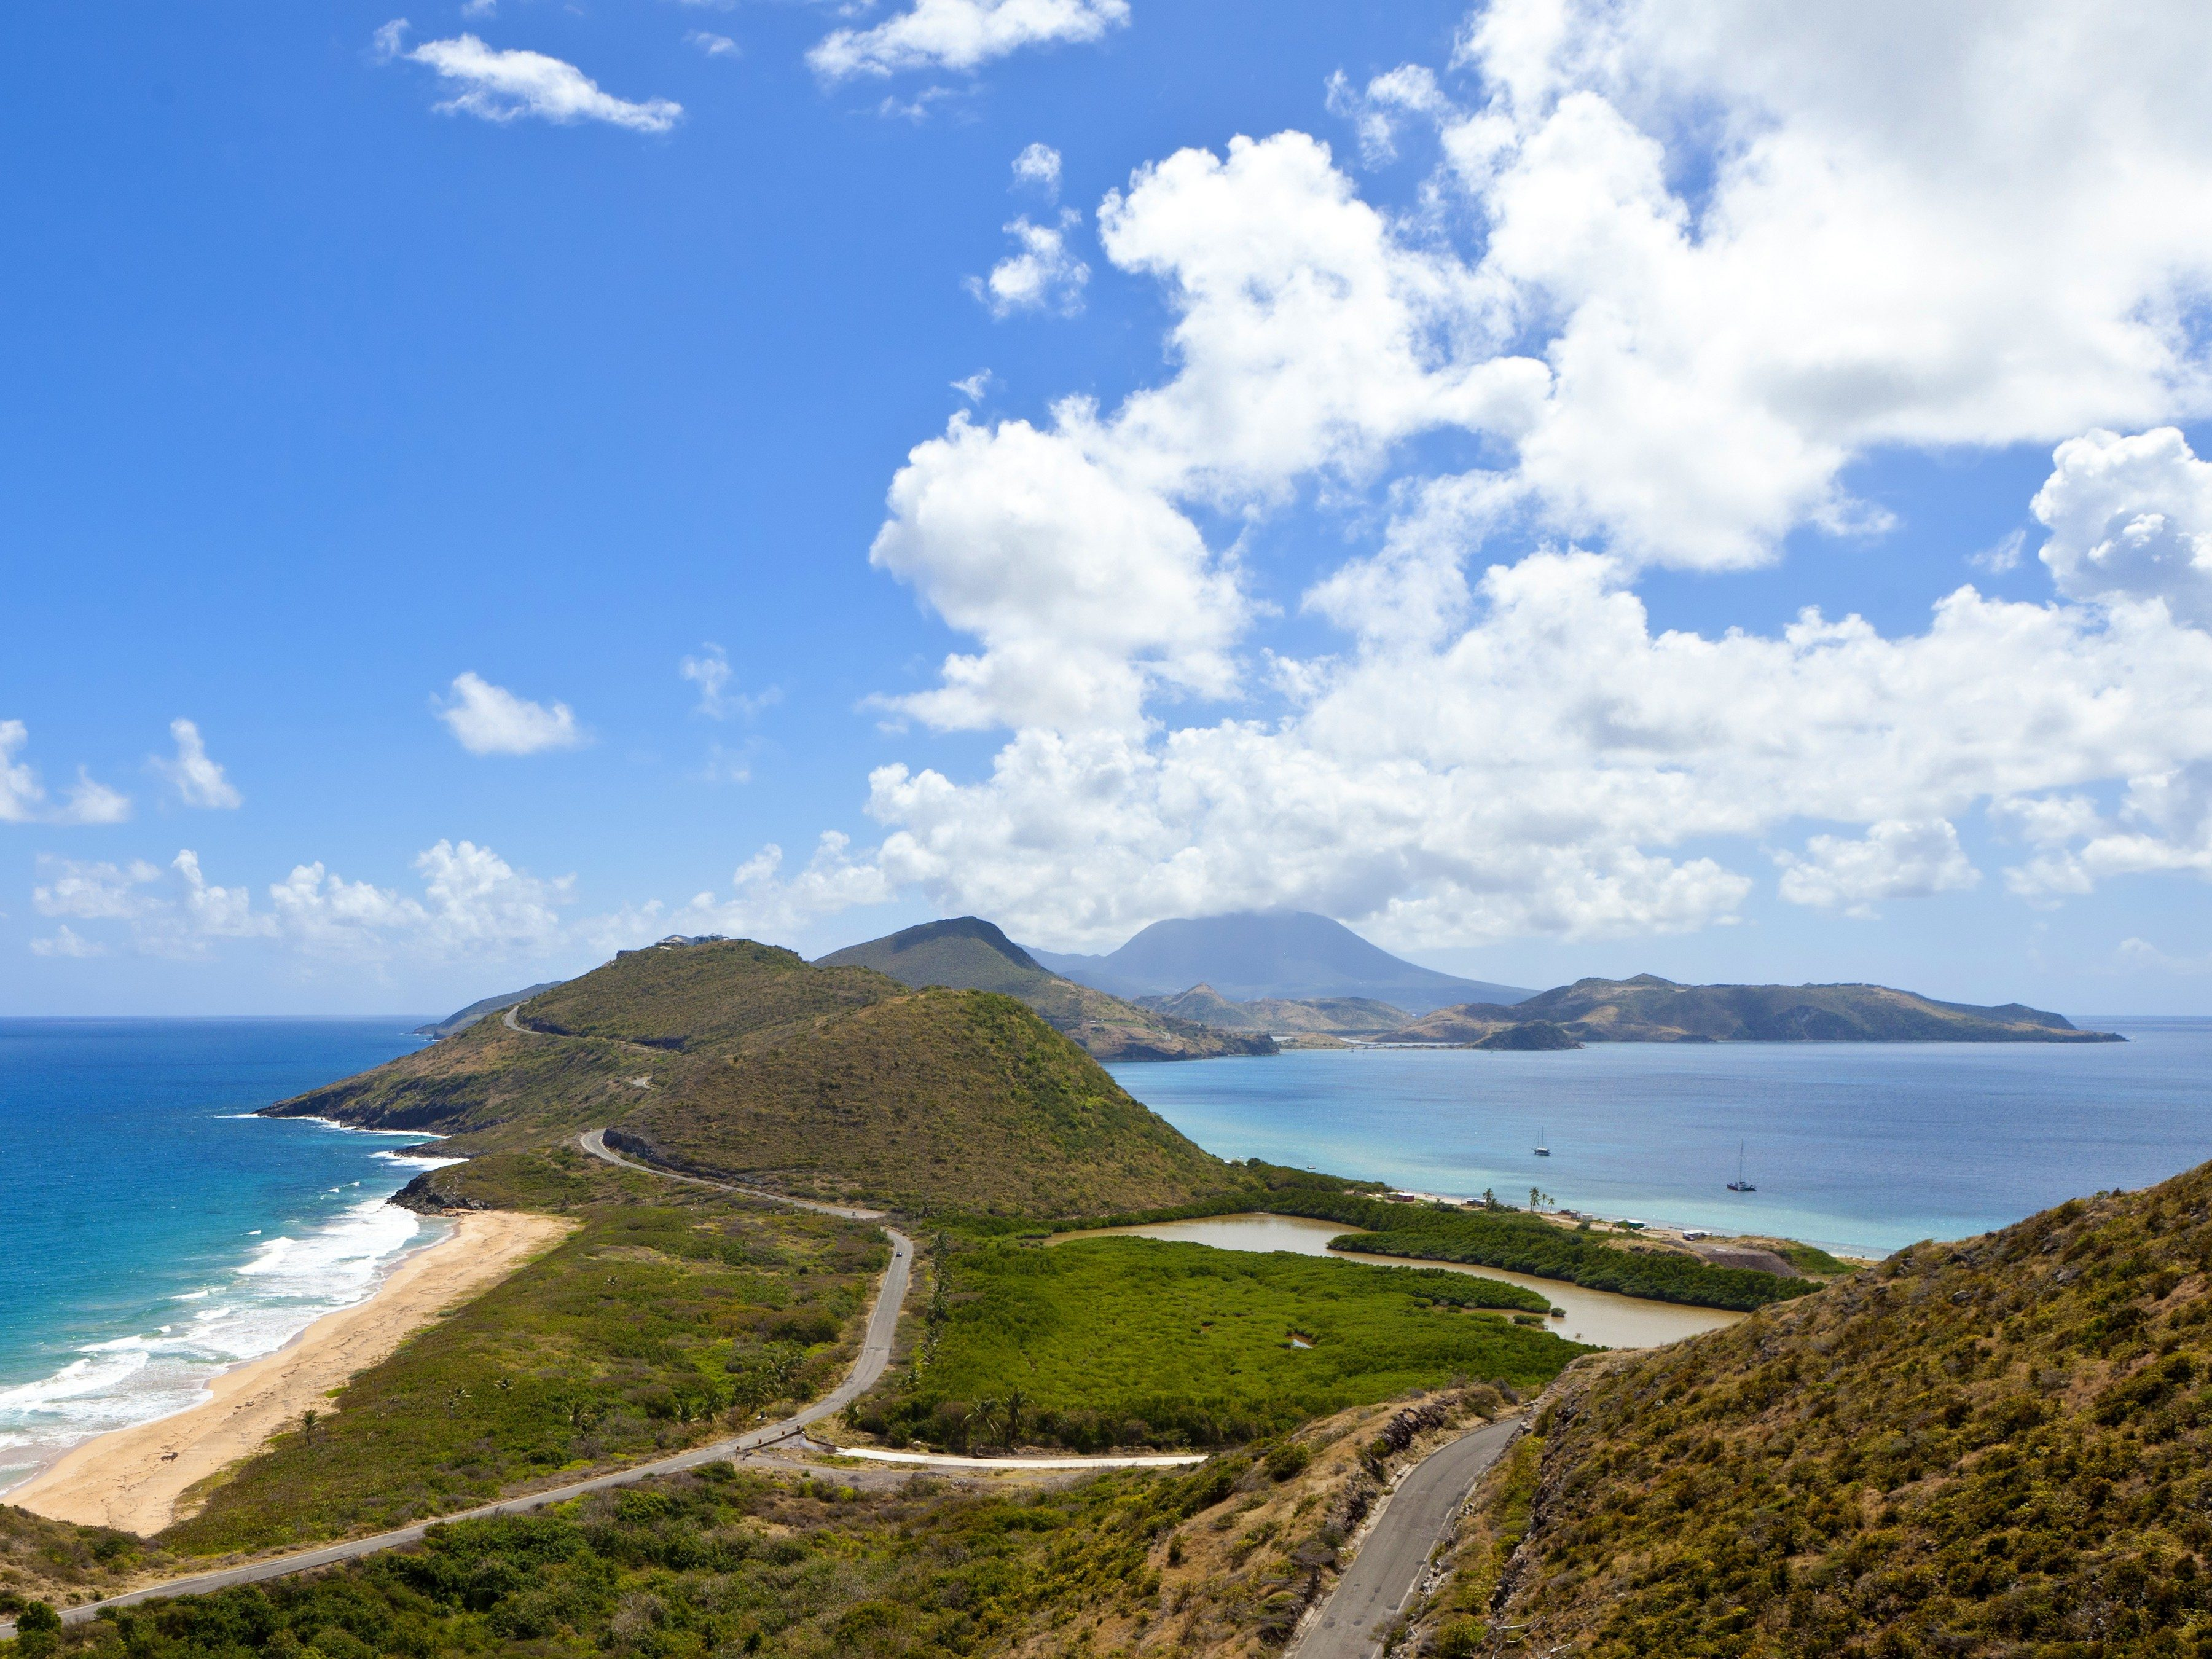 World's 10 Sexiest Places: St. Kitts, the Caribbean